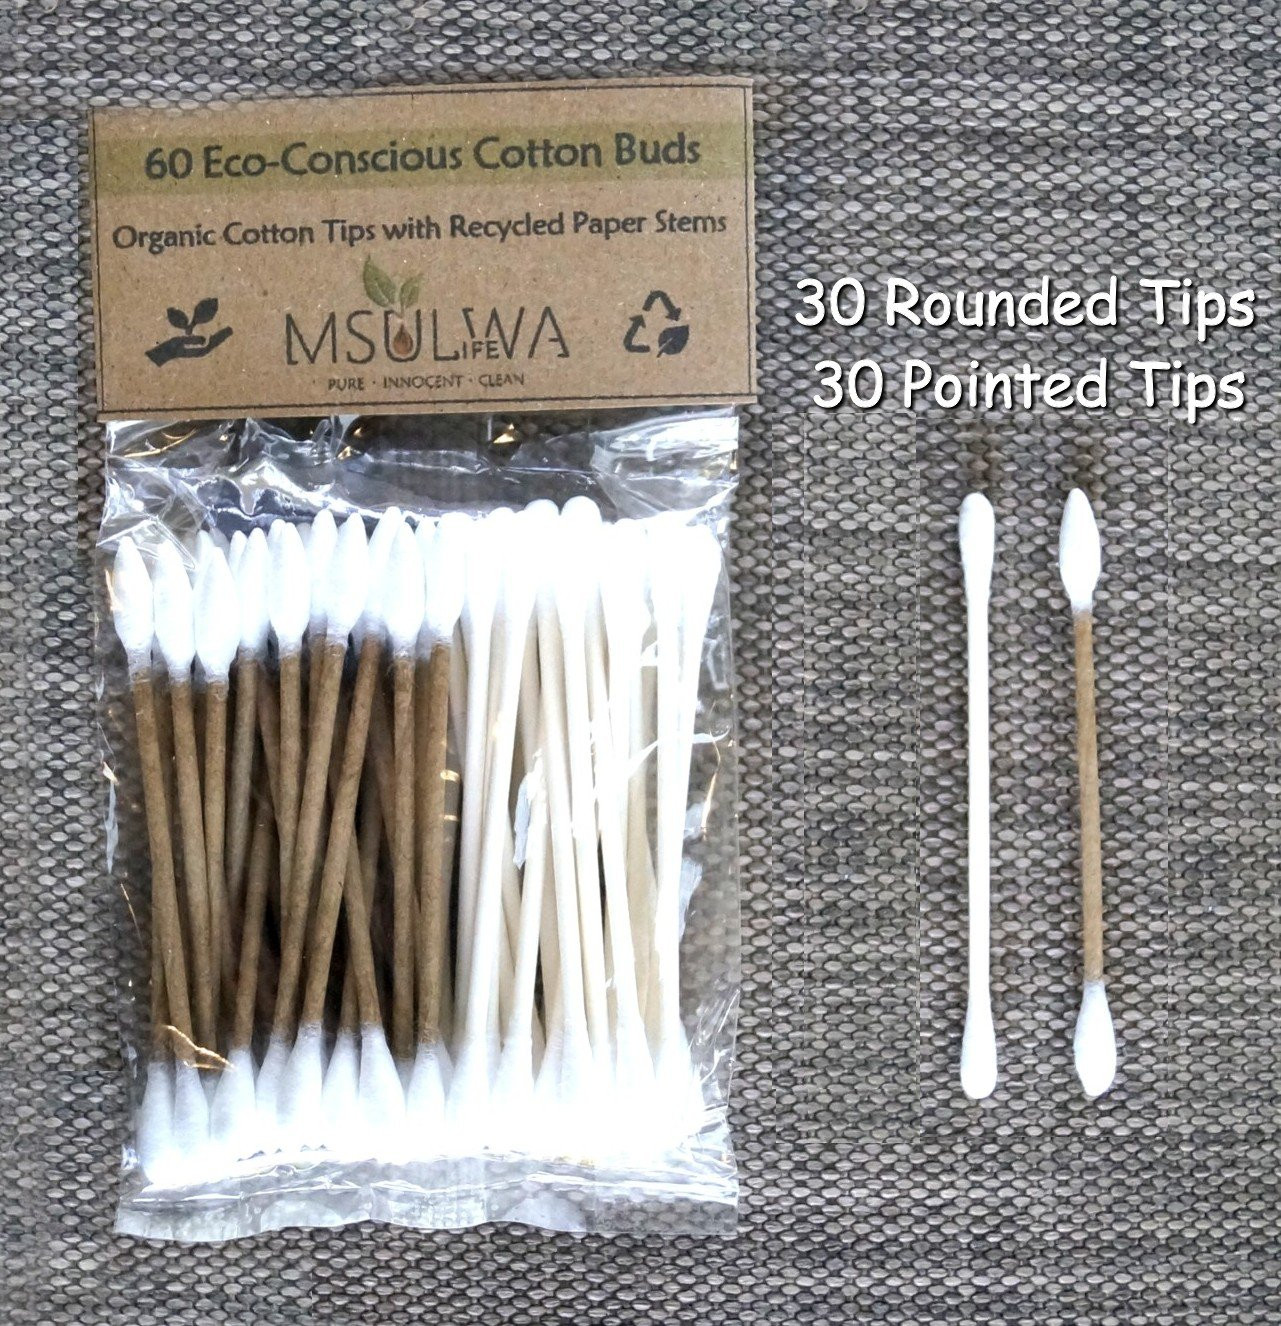 Cotton Buds (Organic Tips with Recycled Paper Stems)